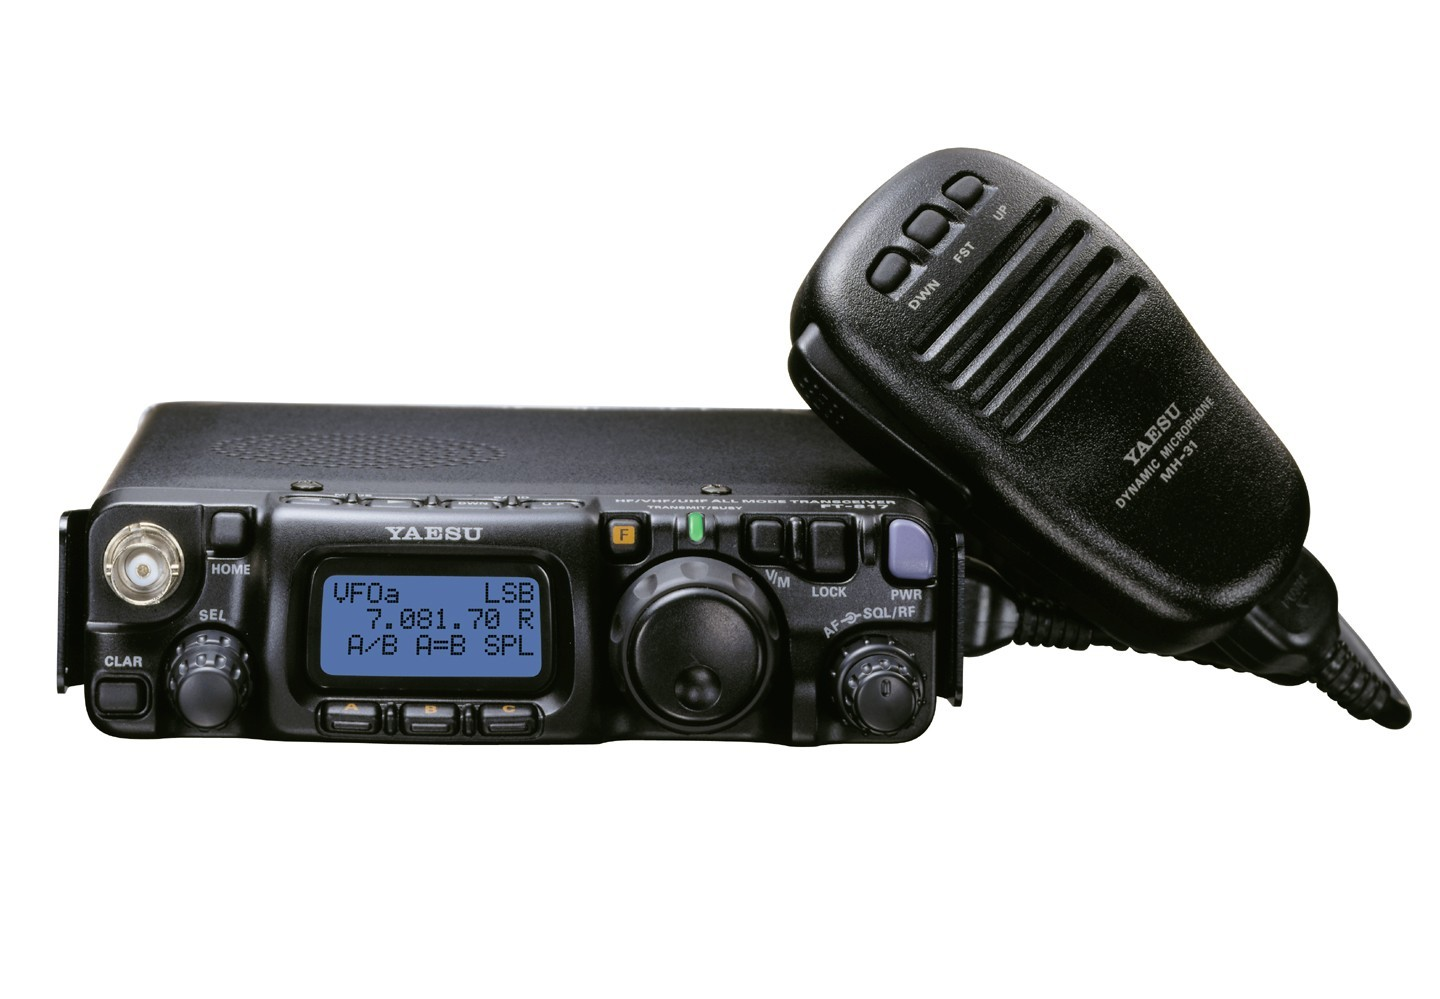 Yaesu FT-817ND - Portable HF-VHF- UHF Radio Transceiver